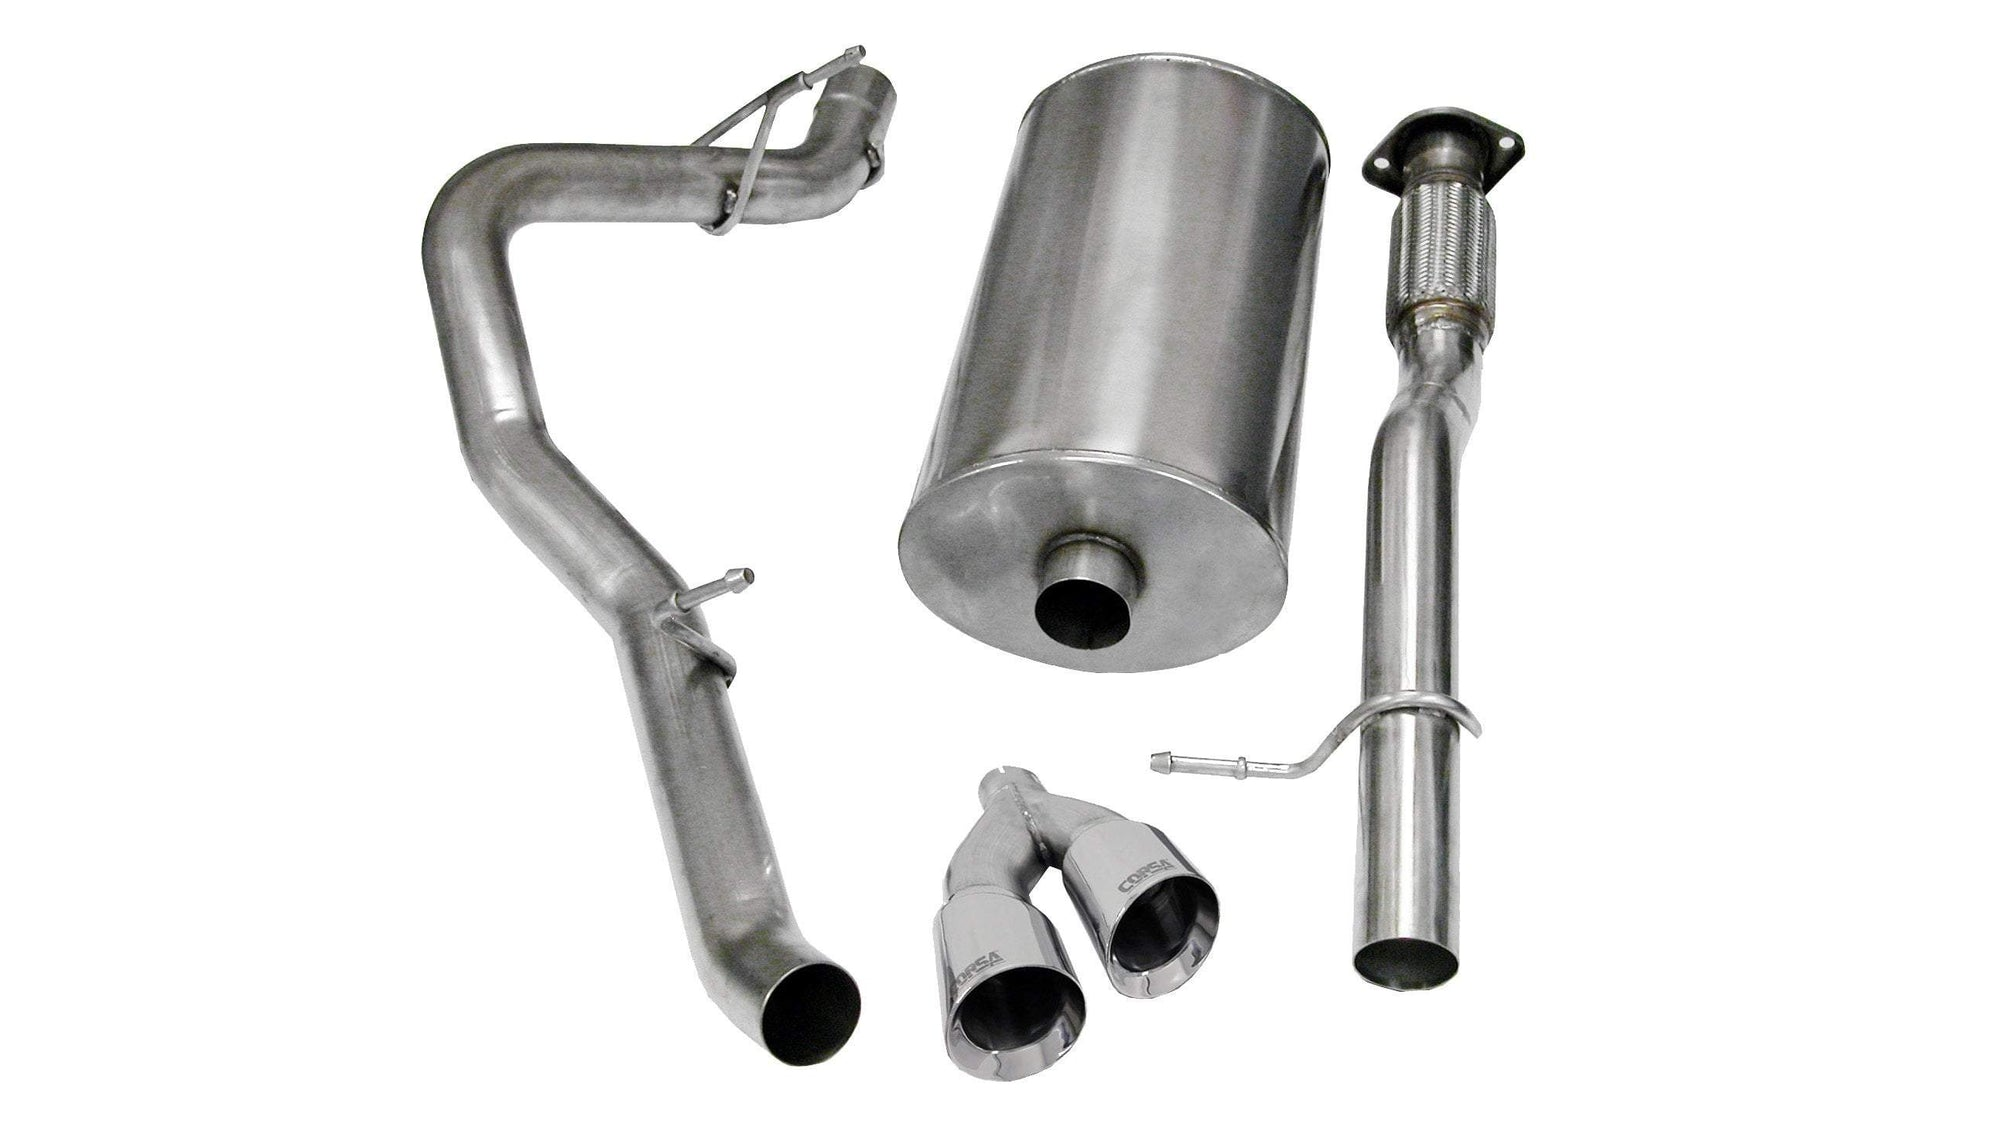 "CORSA PERFORMANCE Cat-Back Exhaust Polished / Sport / Single Side - Twin 4.0in 2009-2014 Chevrolet Avalanche, Suburban, GMC Yukon XL, 5.3L 6.0L V8, 3.0"" Single Side Exit Cat-Back Exhaust System with Twin 4.0"" Tips  (14914) Sport Sound Level"